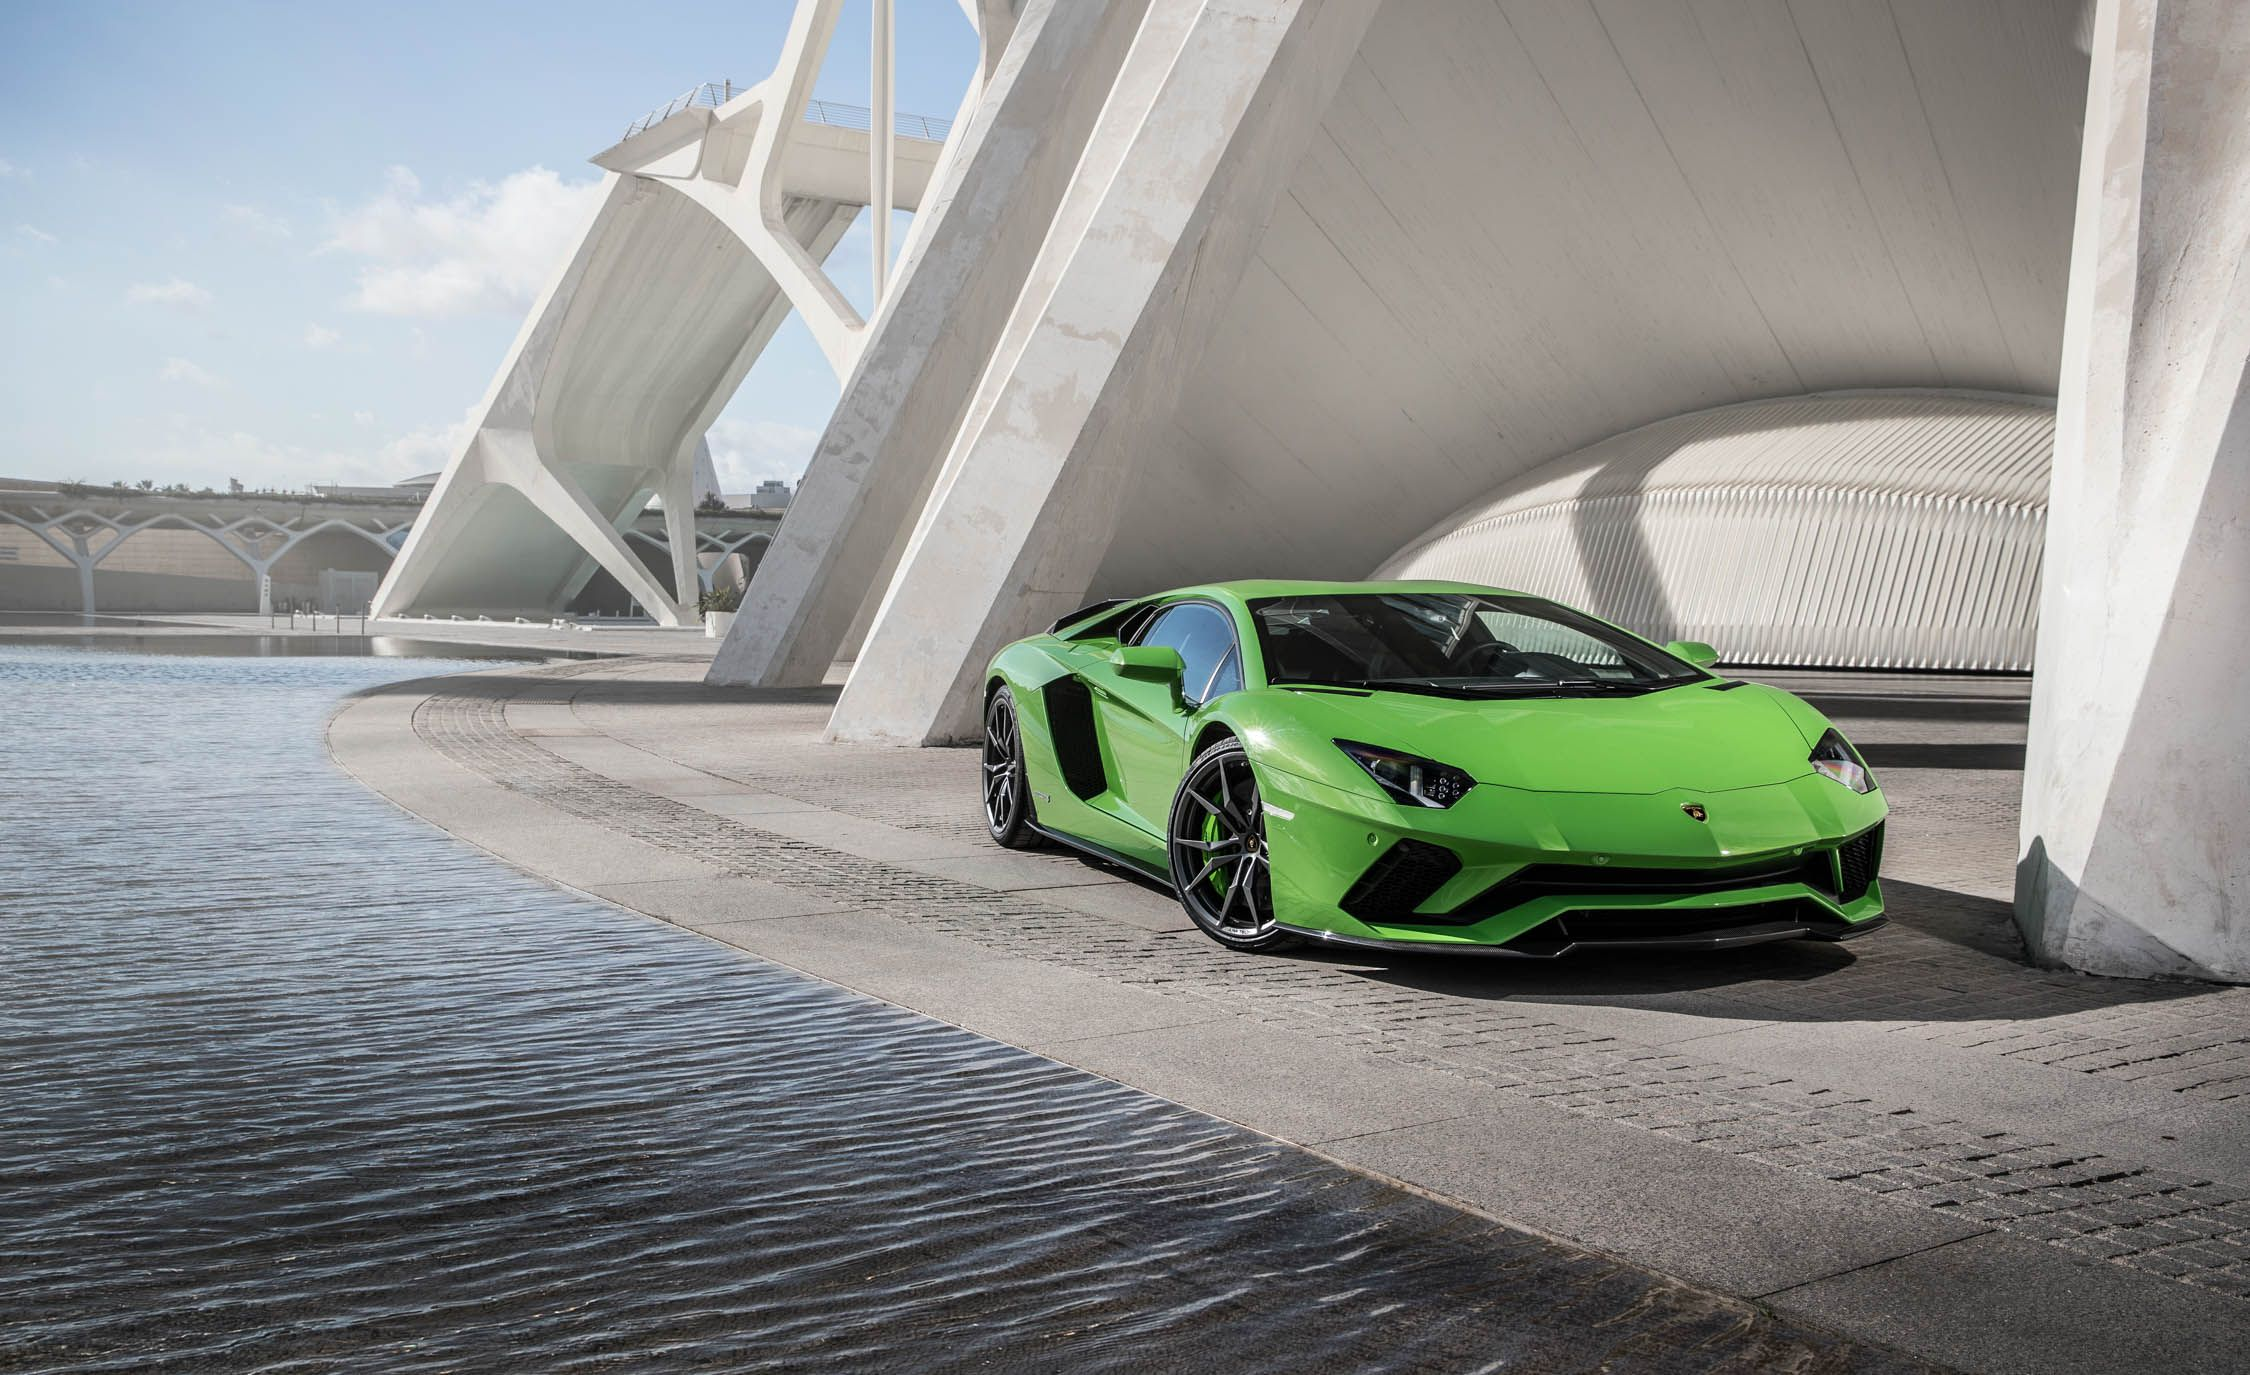 schmohl was the aventador zurich this sold lamborghini green via pin dealership lime price army